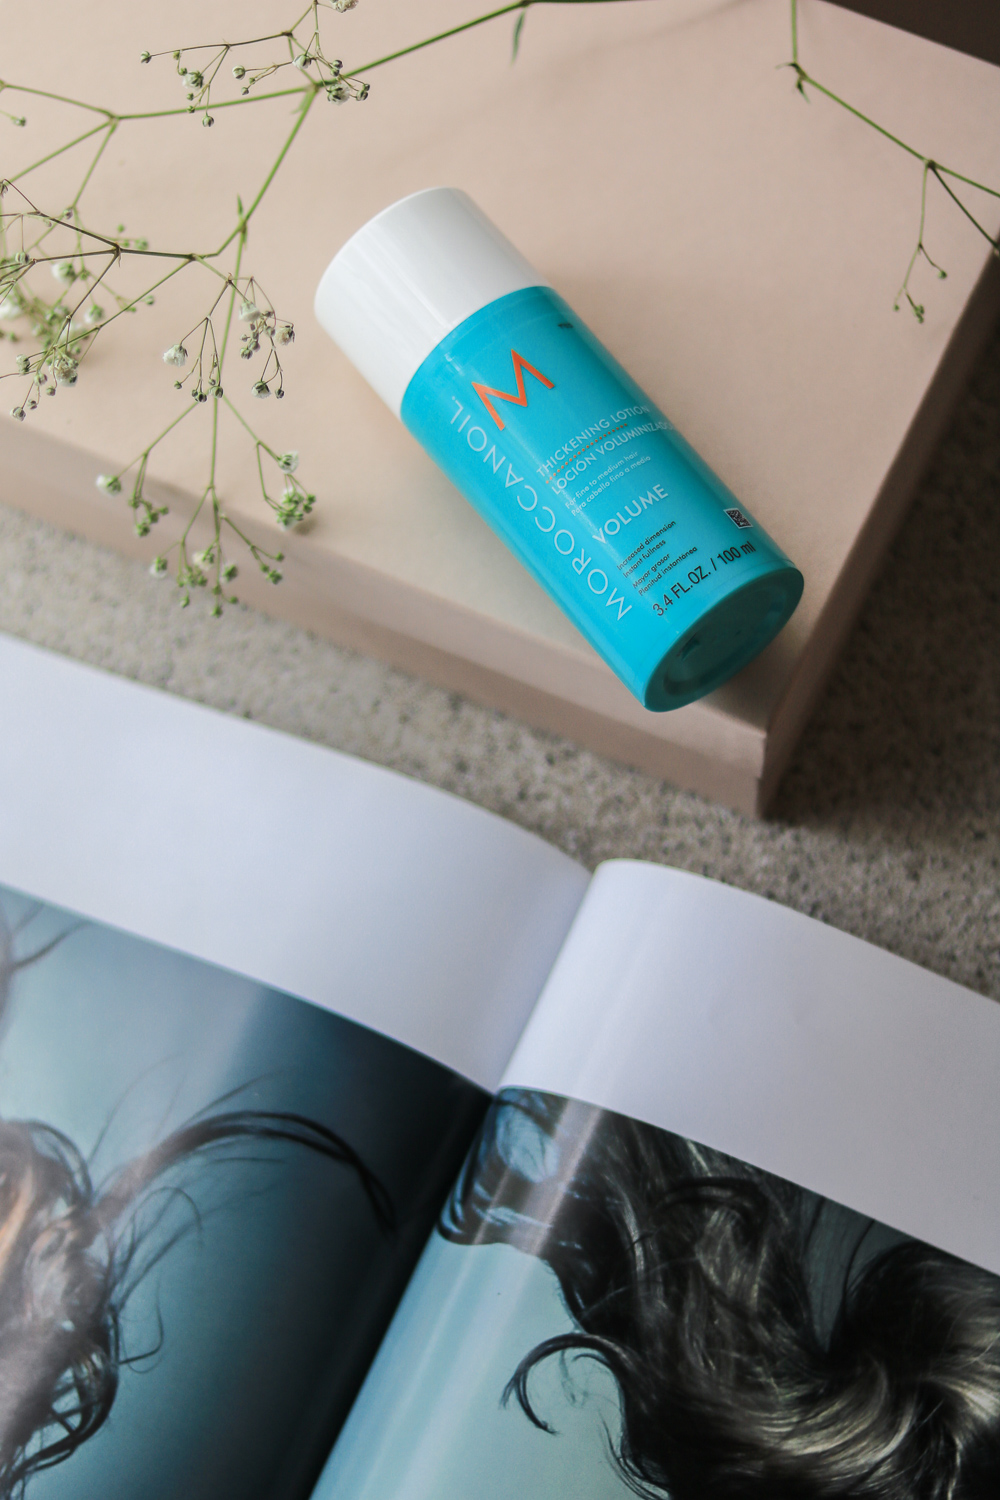 Moroccan Oil Thickening Lotion for Volume | 9Lives